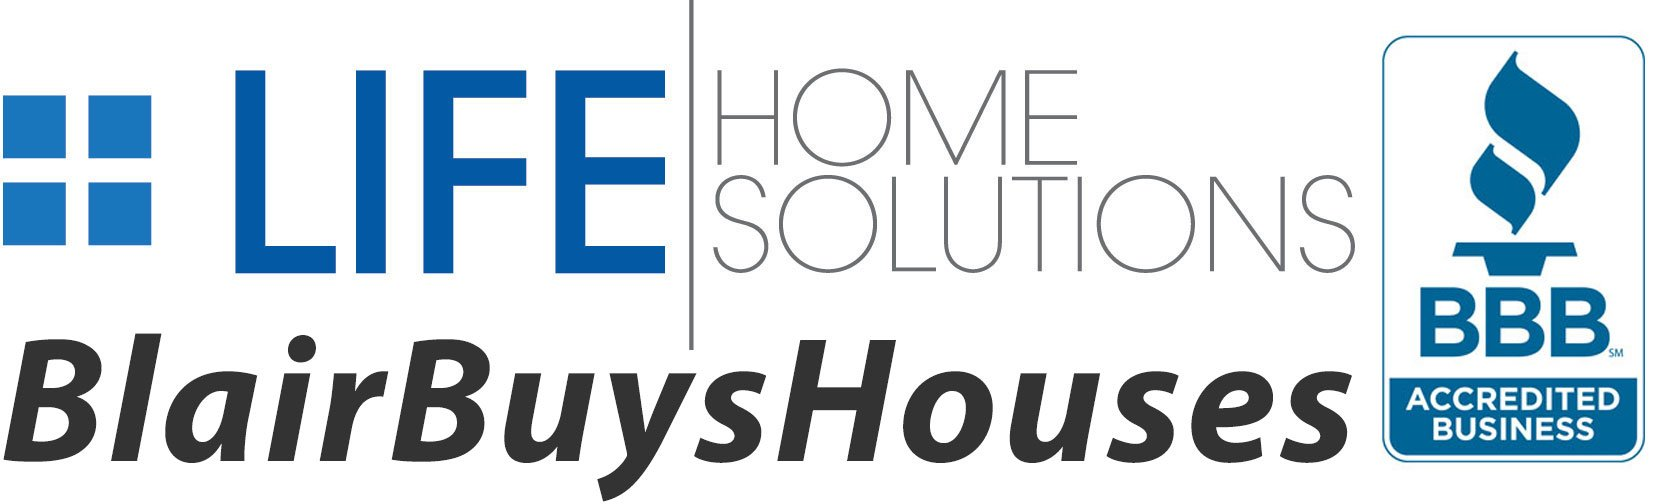 Life Home Solutions logo